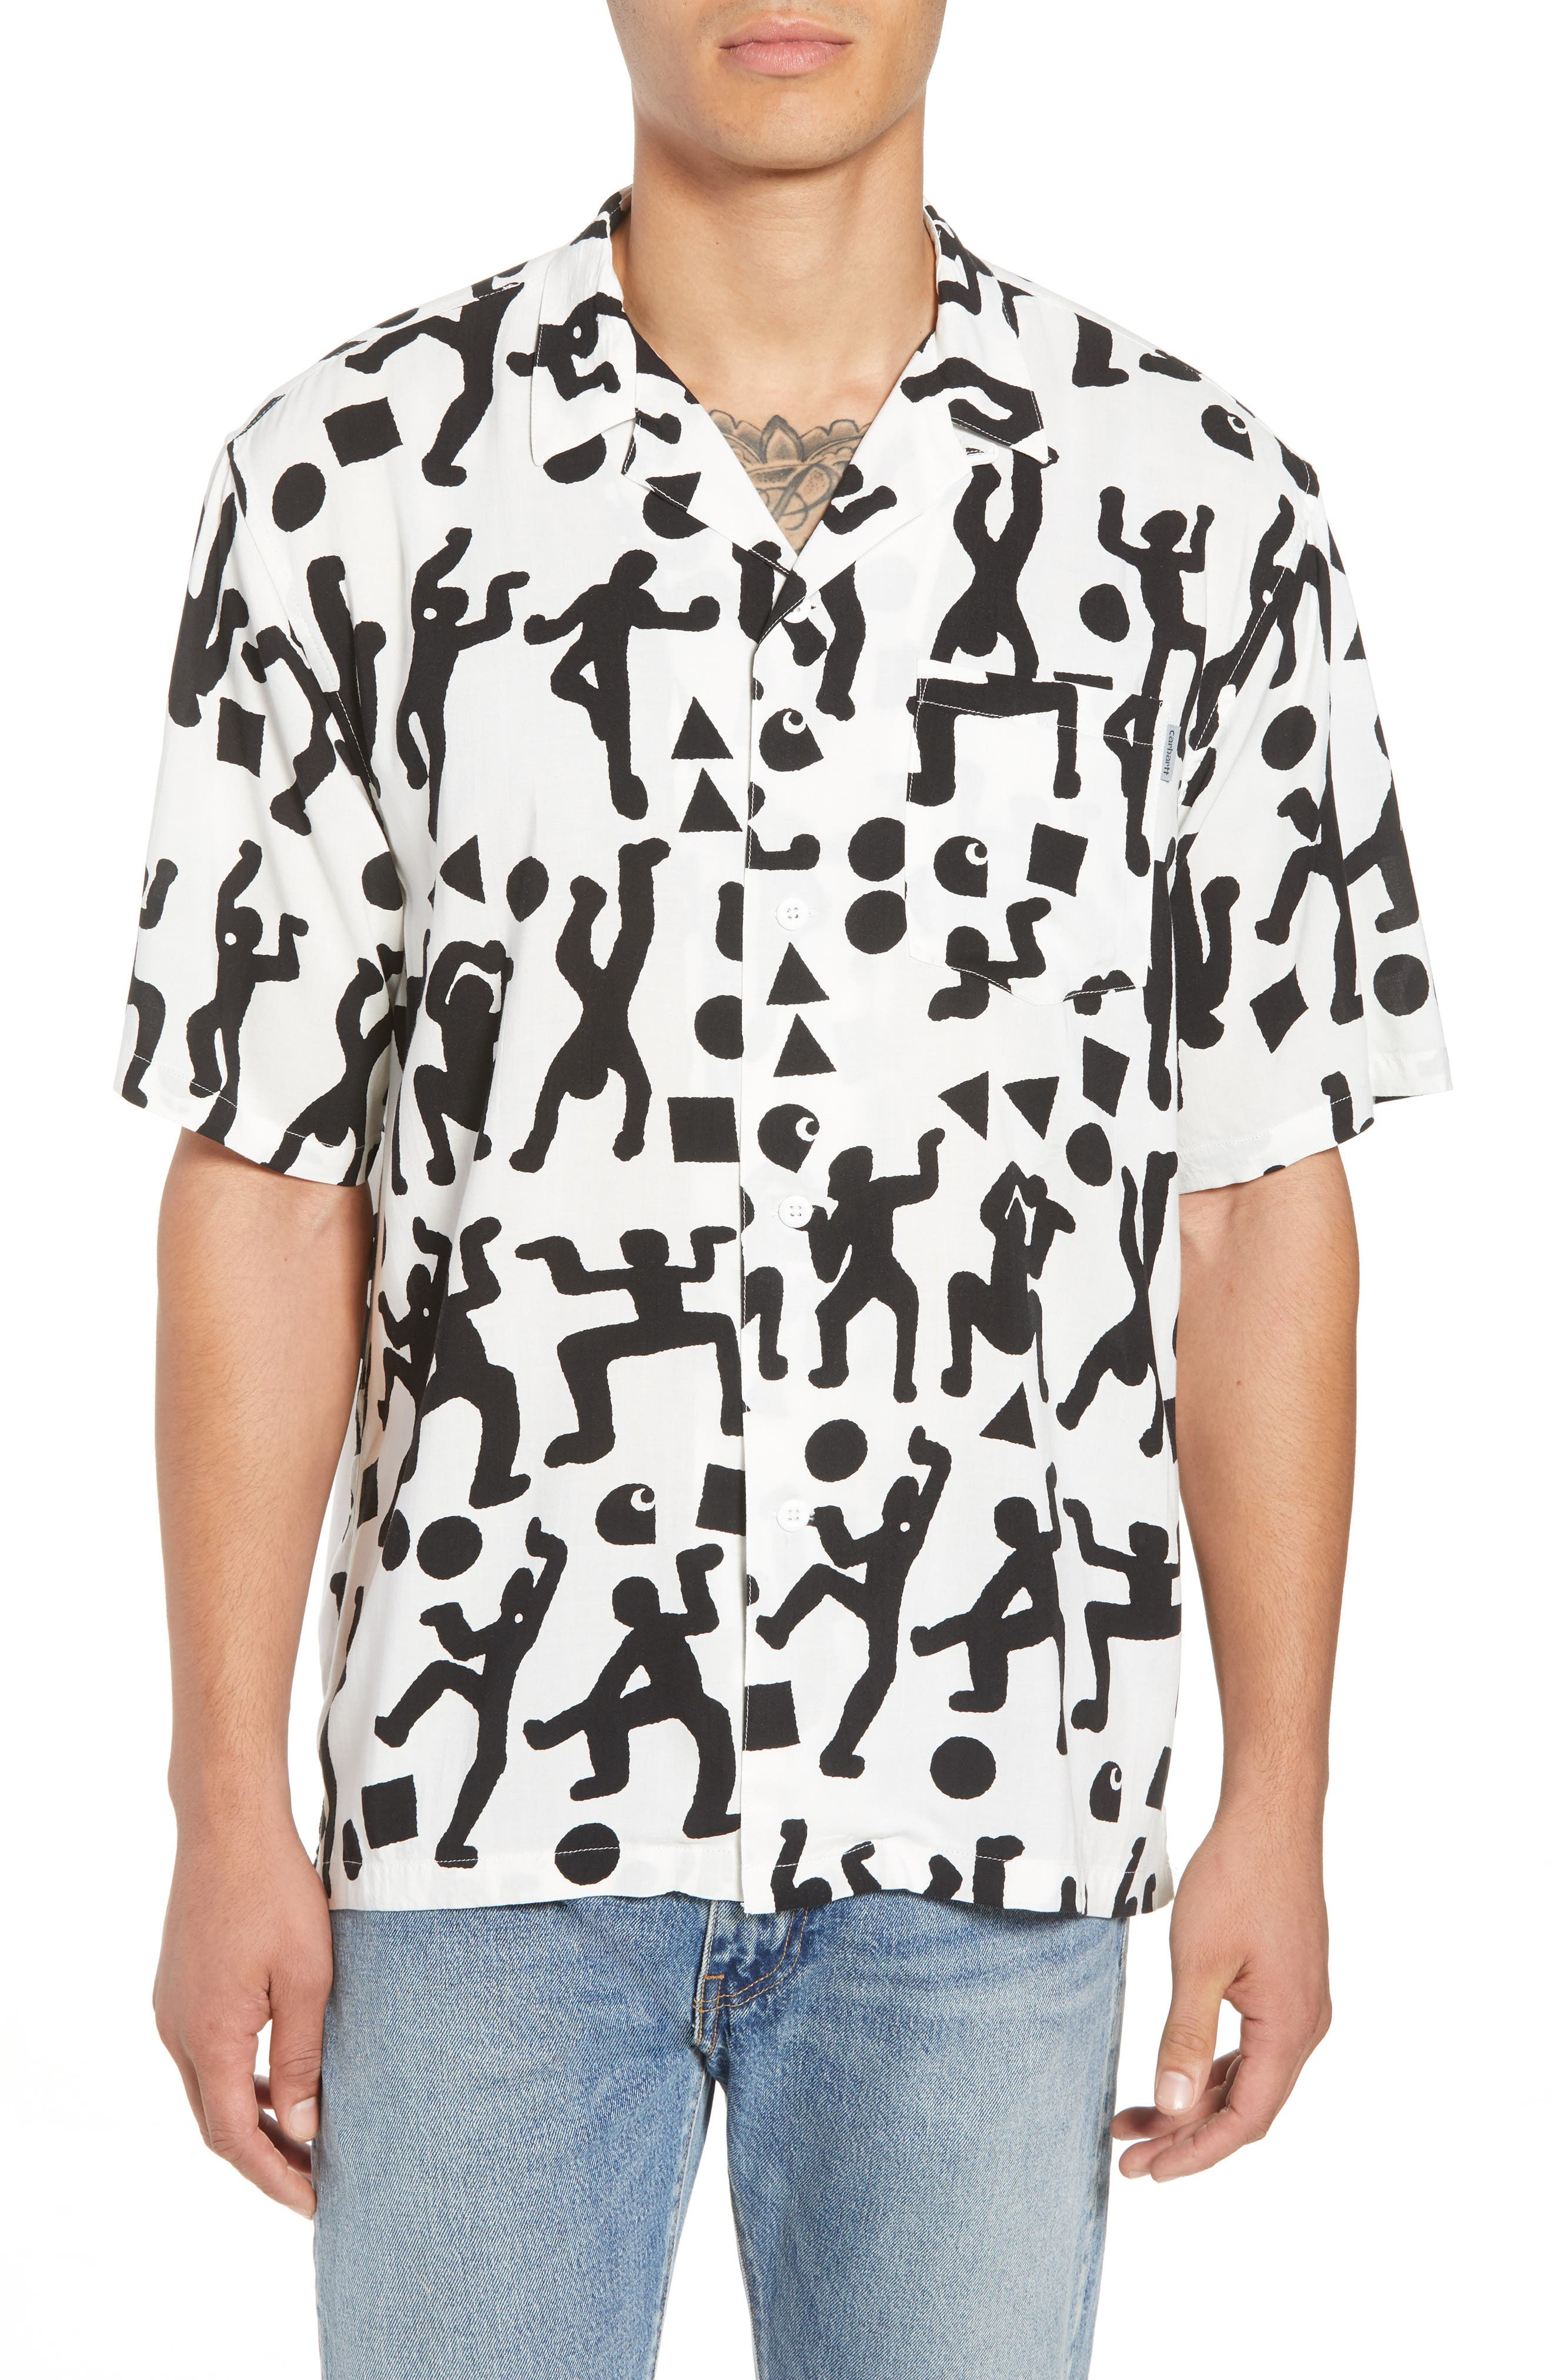 World Party Woven Shirt,                             Main thumbnail 1, color,                             World Party Print Black/ White